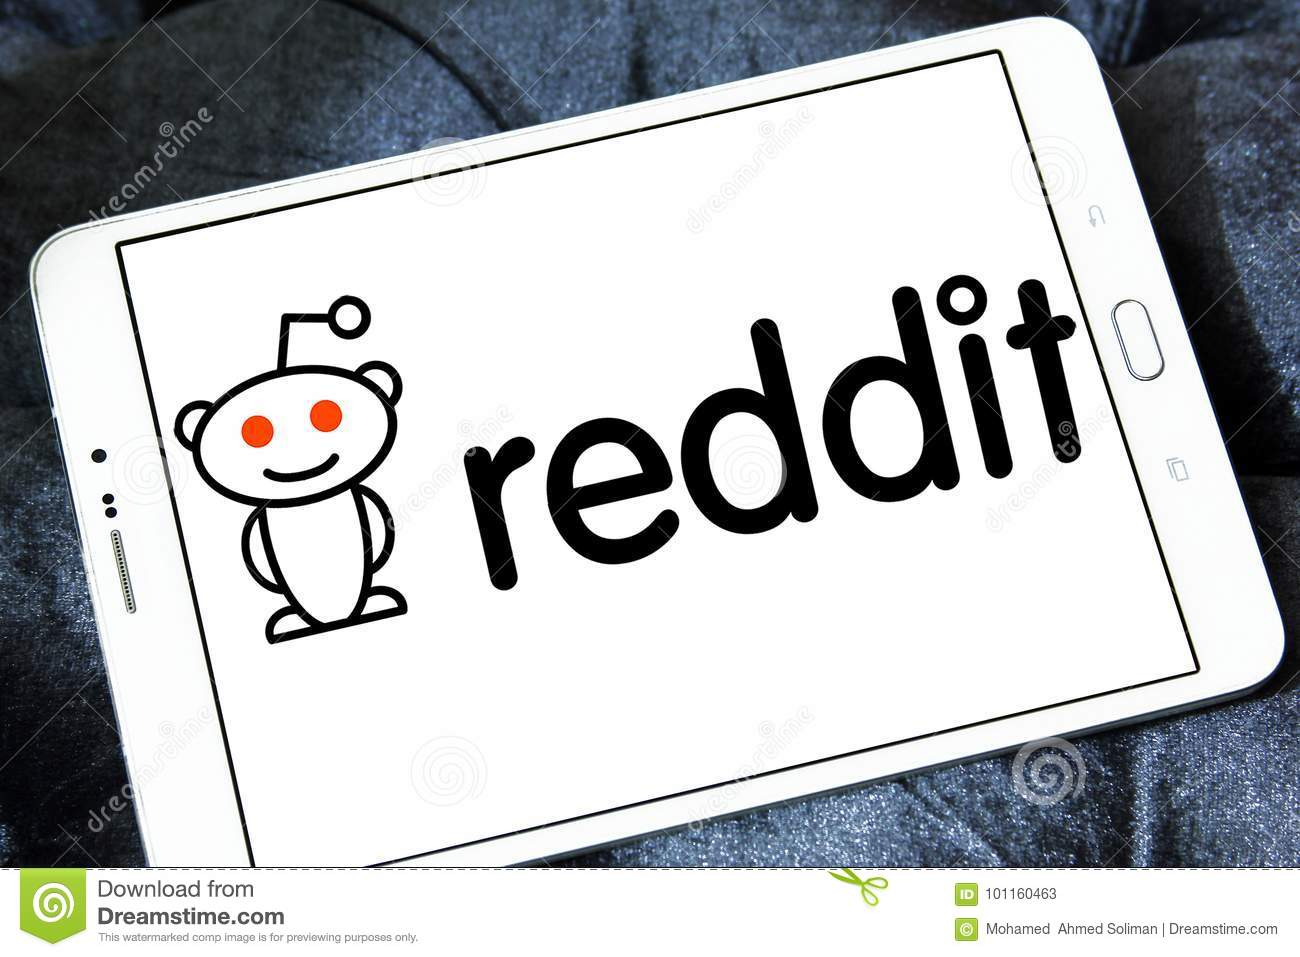 Reddit website logo editorial stock photo  Image of rating - 101160463